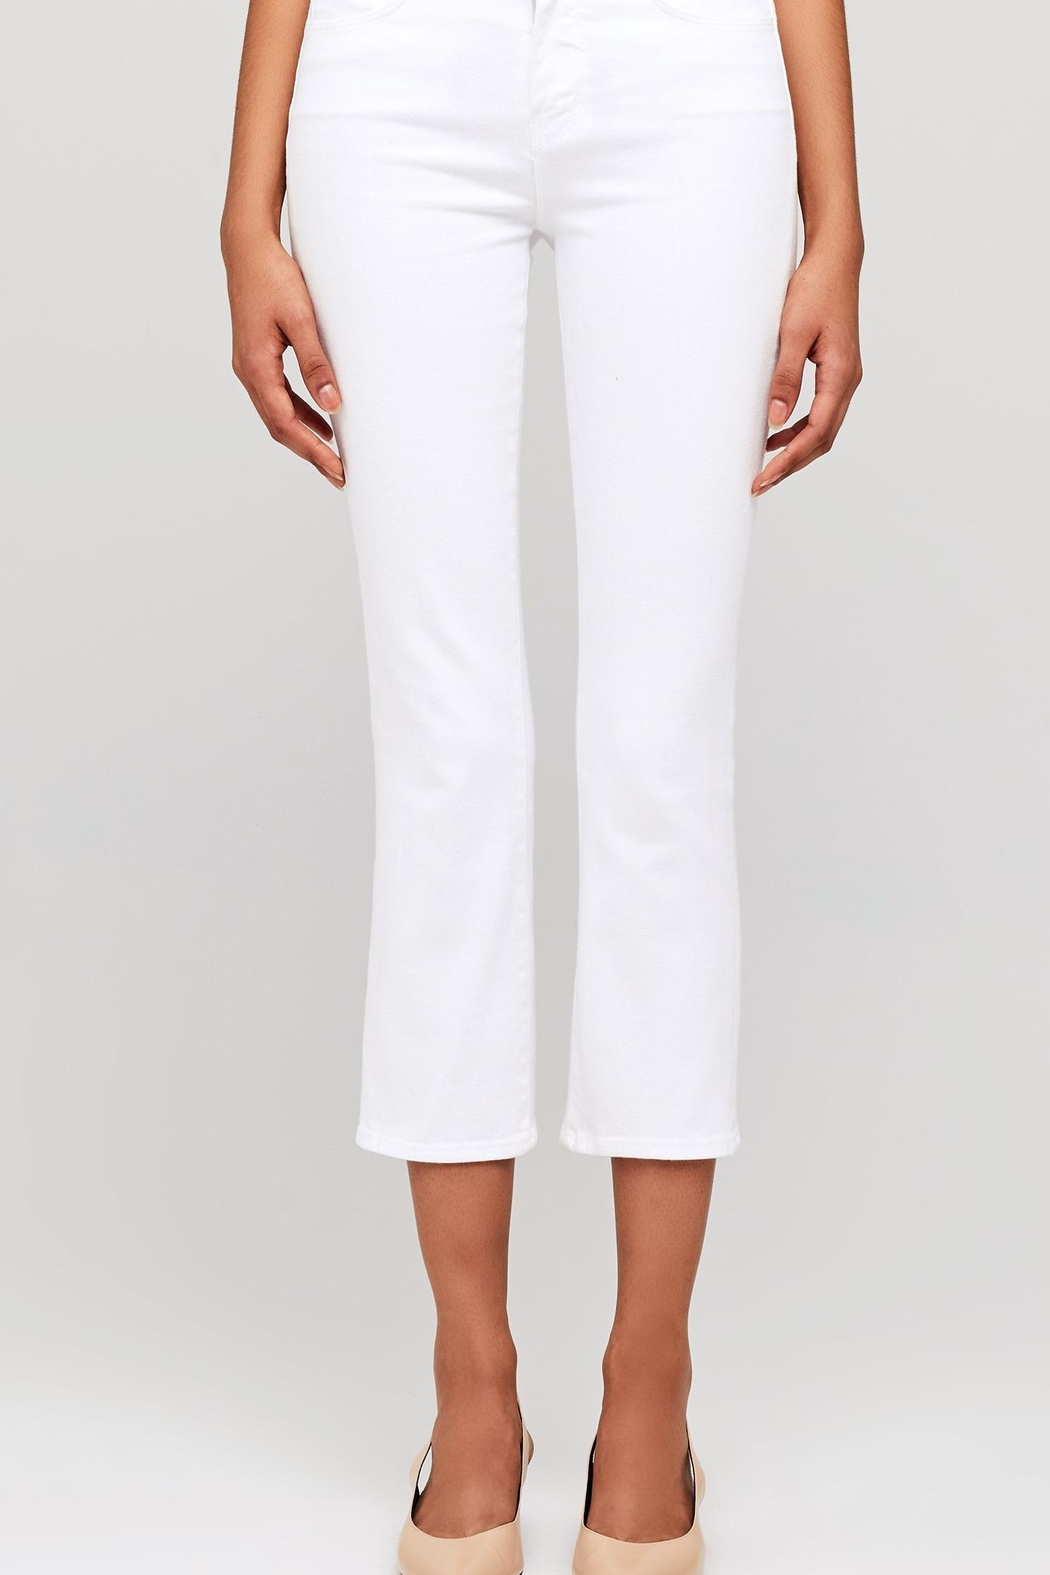 L'Agence Nadia High Rise Crop Straight Jean - Front Full Image